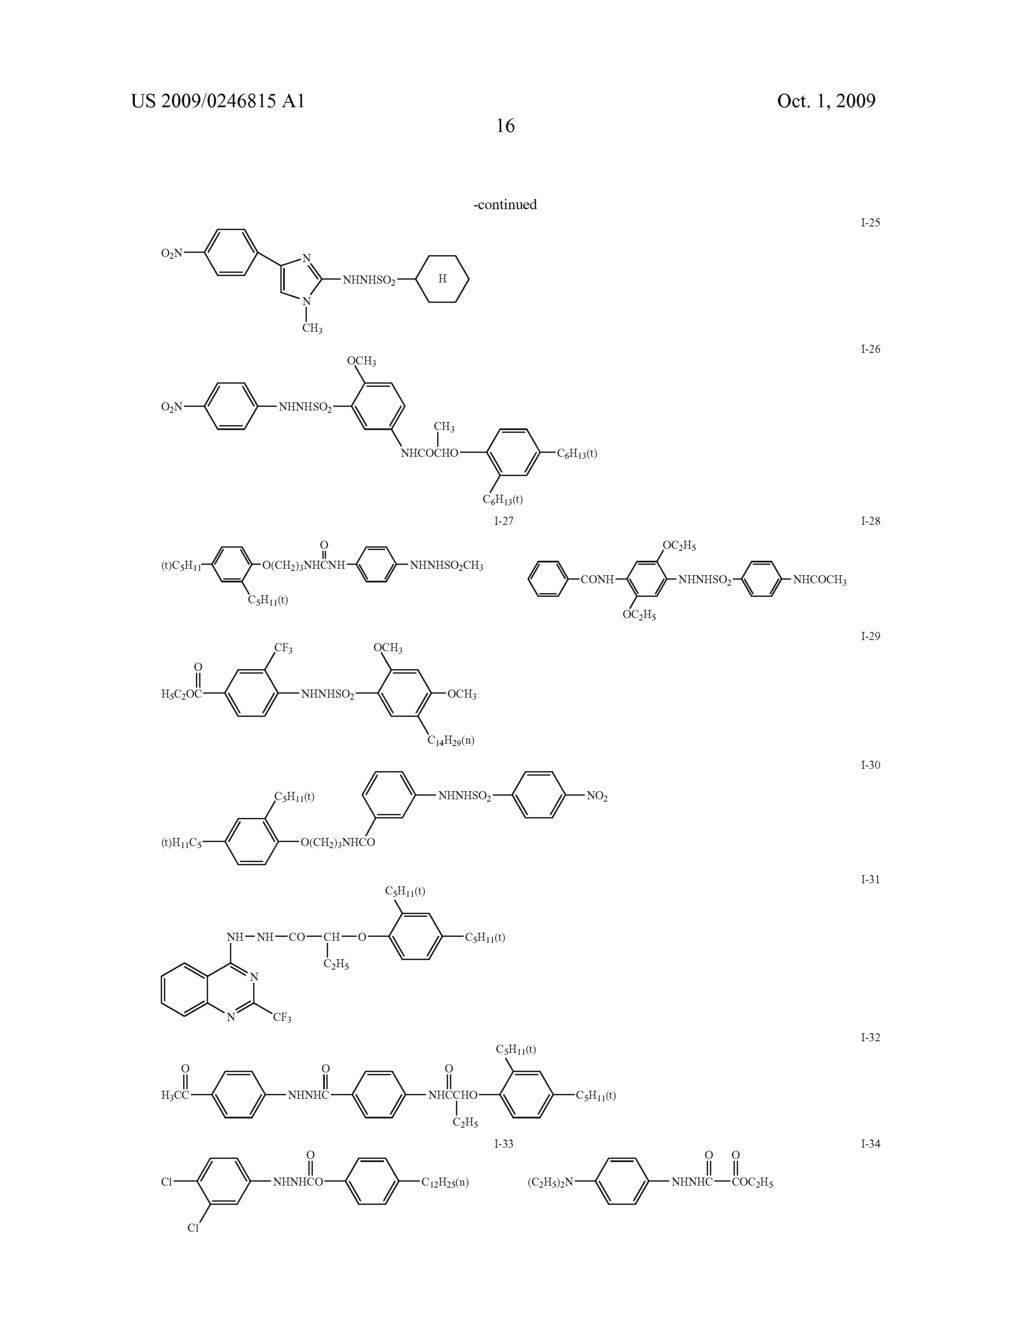 PROTEASE DETECTION MATERIAL, SET OF PROTEASE DETECTION MATERIALS, AND METHOD FOR MEASURING PROTEASE - diagram, schematic, and image 17